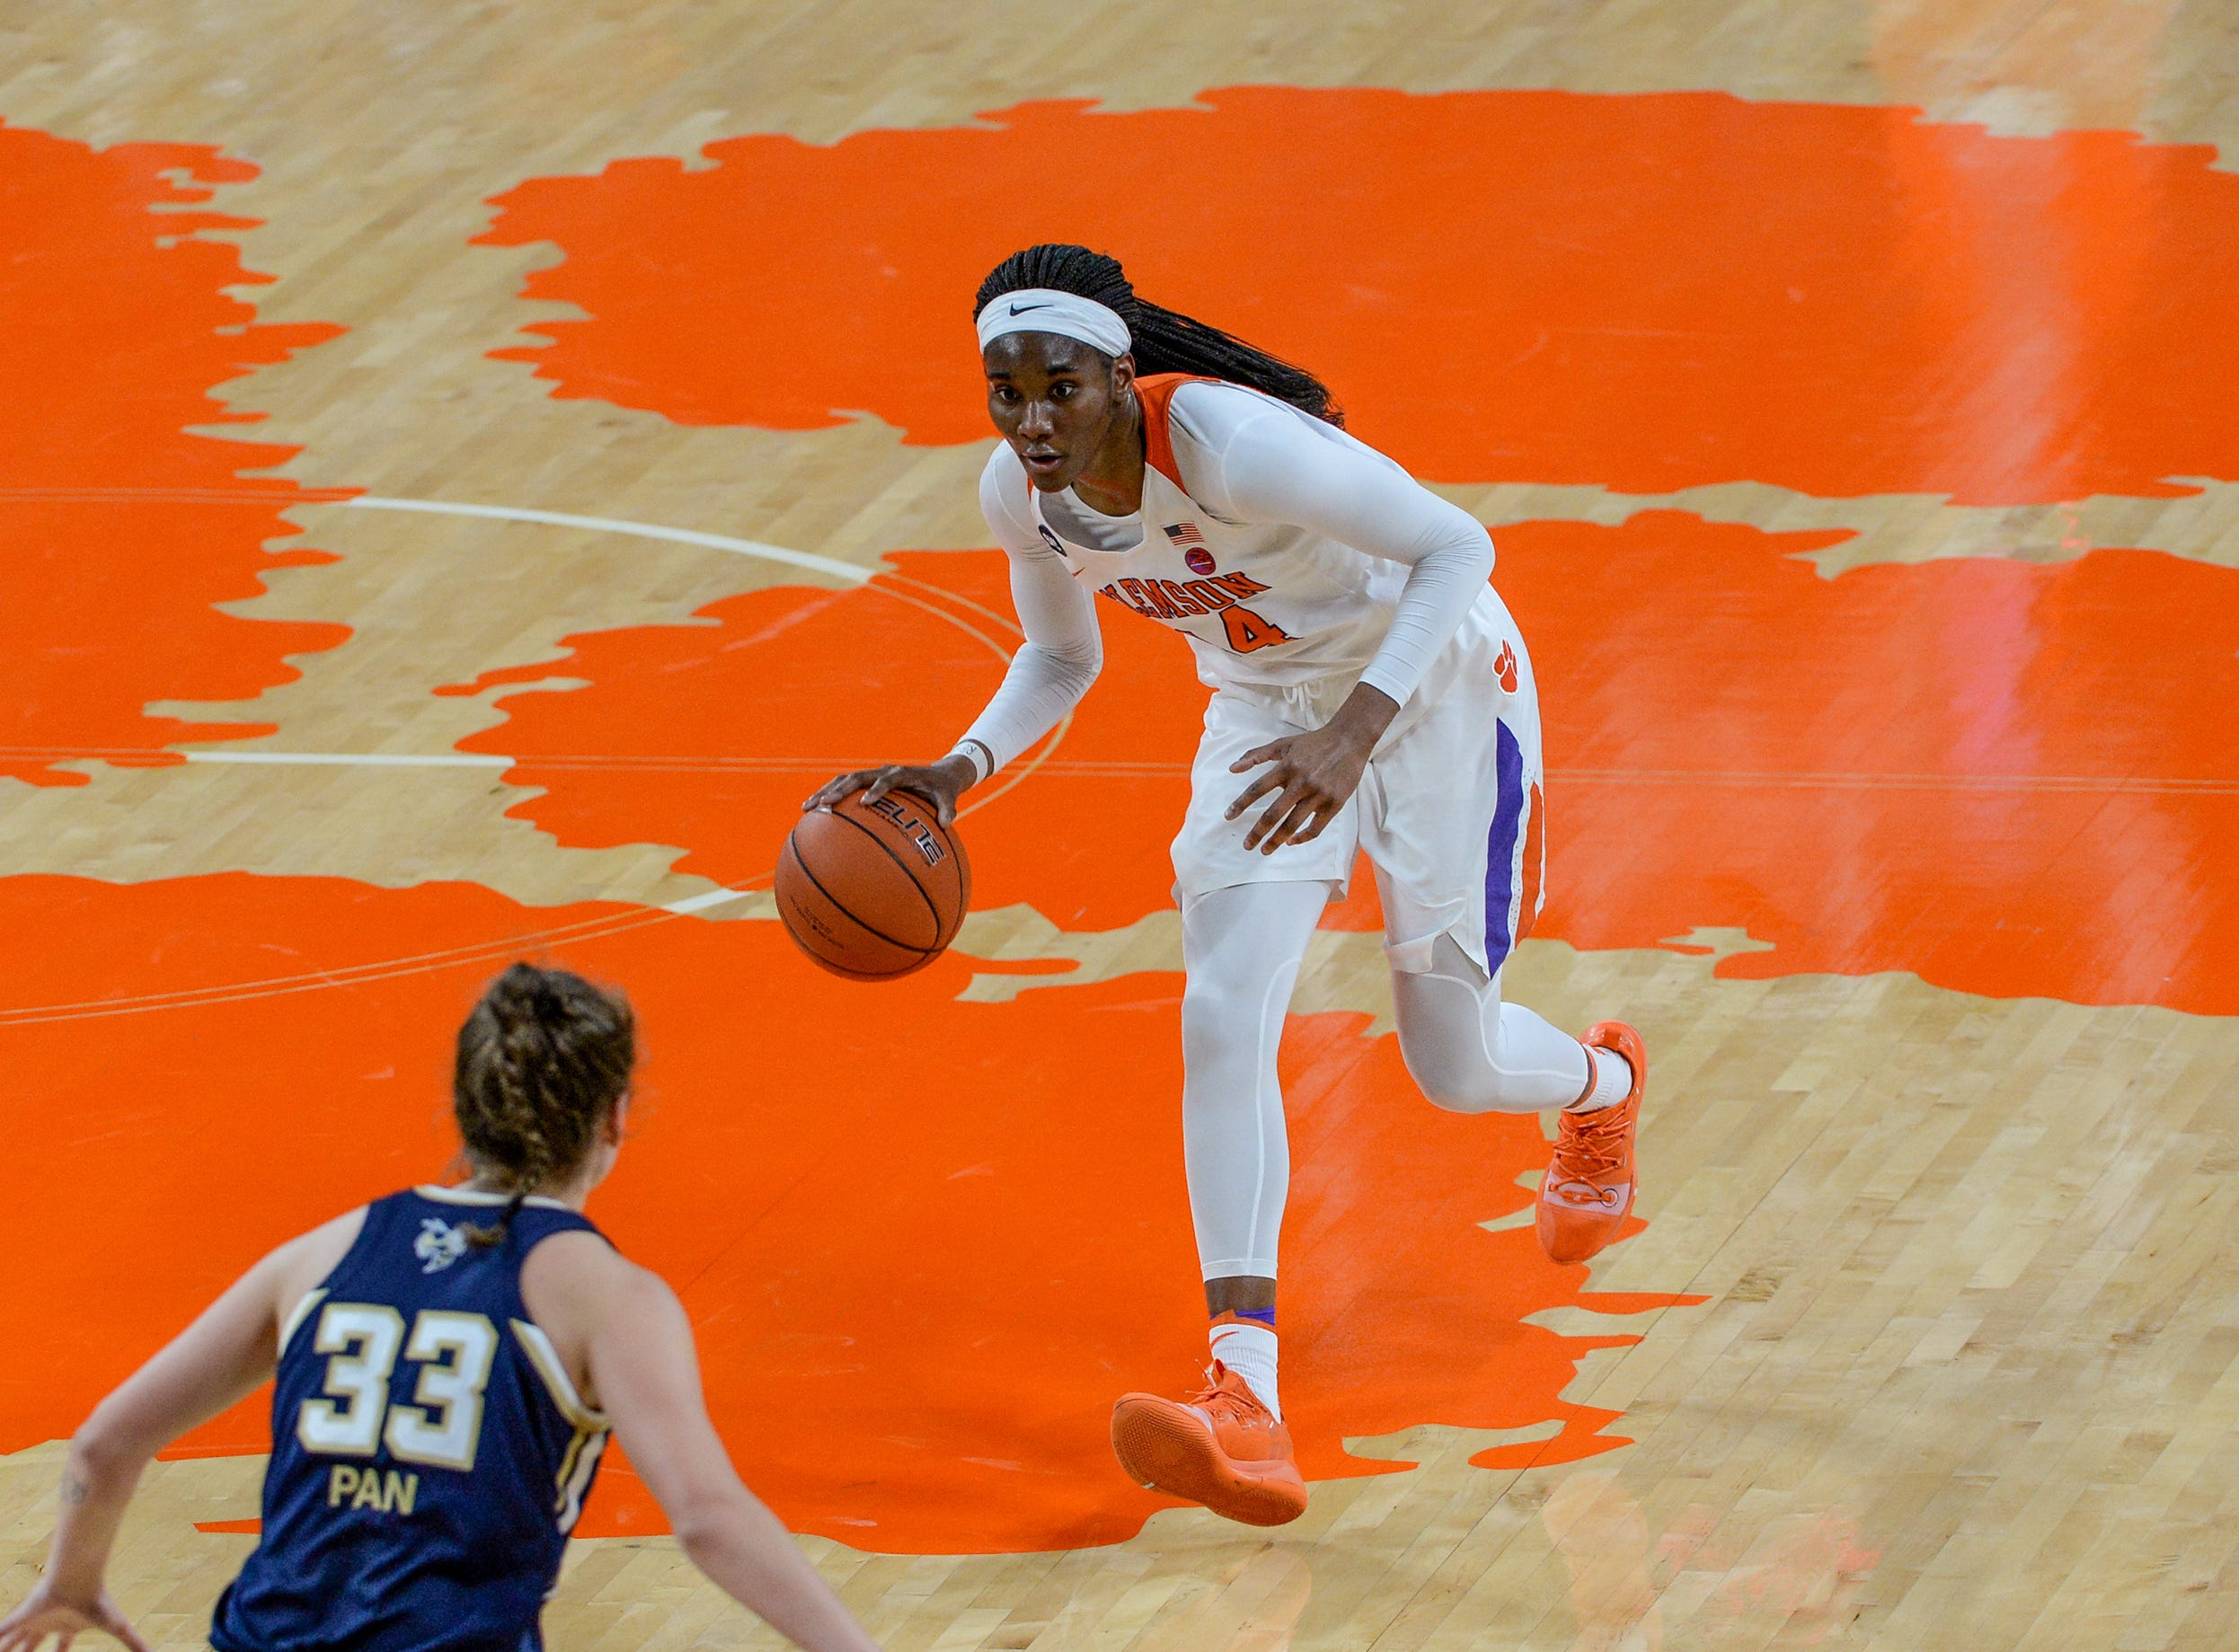 Clemson center Kobi Thornton(44) brings the ball up court against Georgia Tech during the first quarter at Littlejohn Coliseum in Clemson Thursday, January 17, 2019.